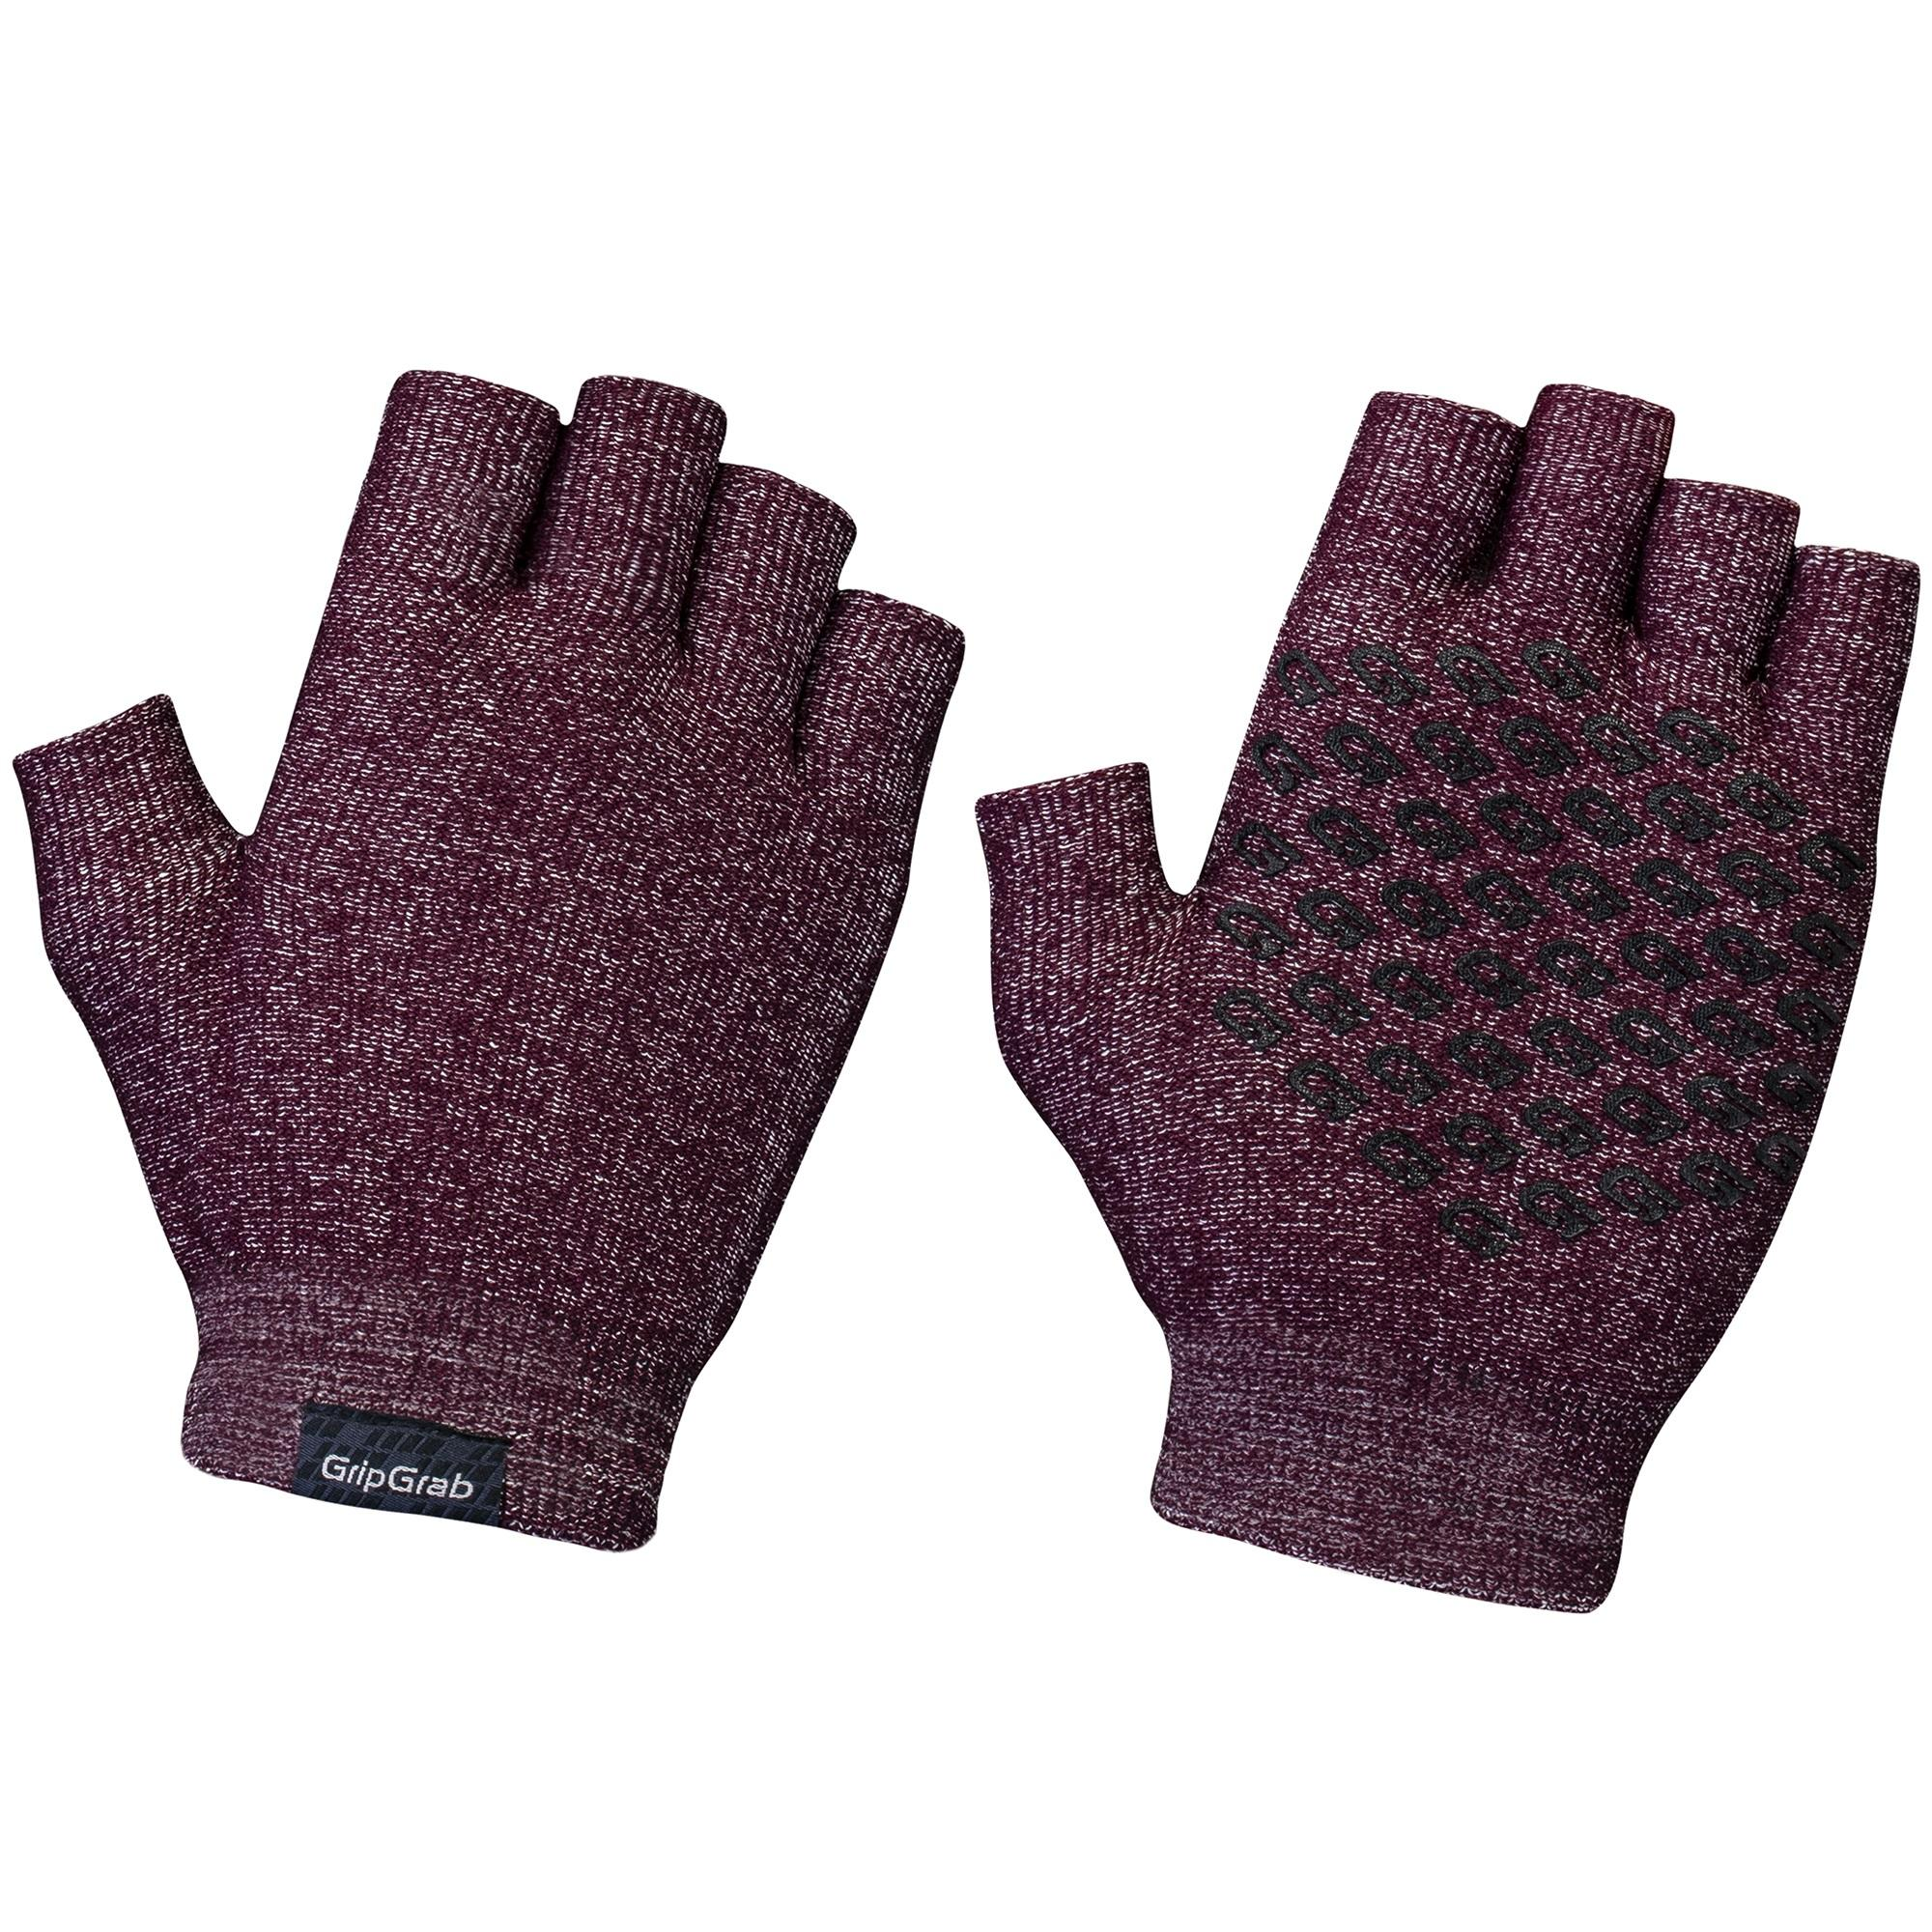 Afbeelding GripGrab Fietshandschoenen Zomer Unisex Rood - Freedom Knitted Short Finger Cycling Glove Dark Red